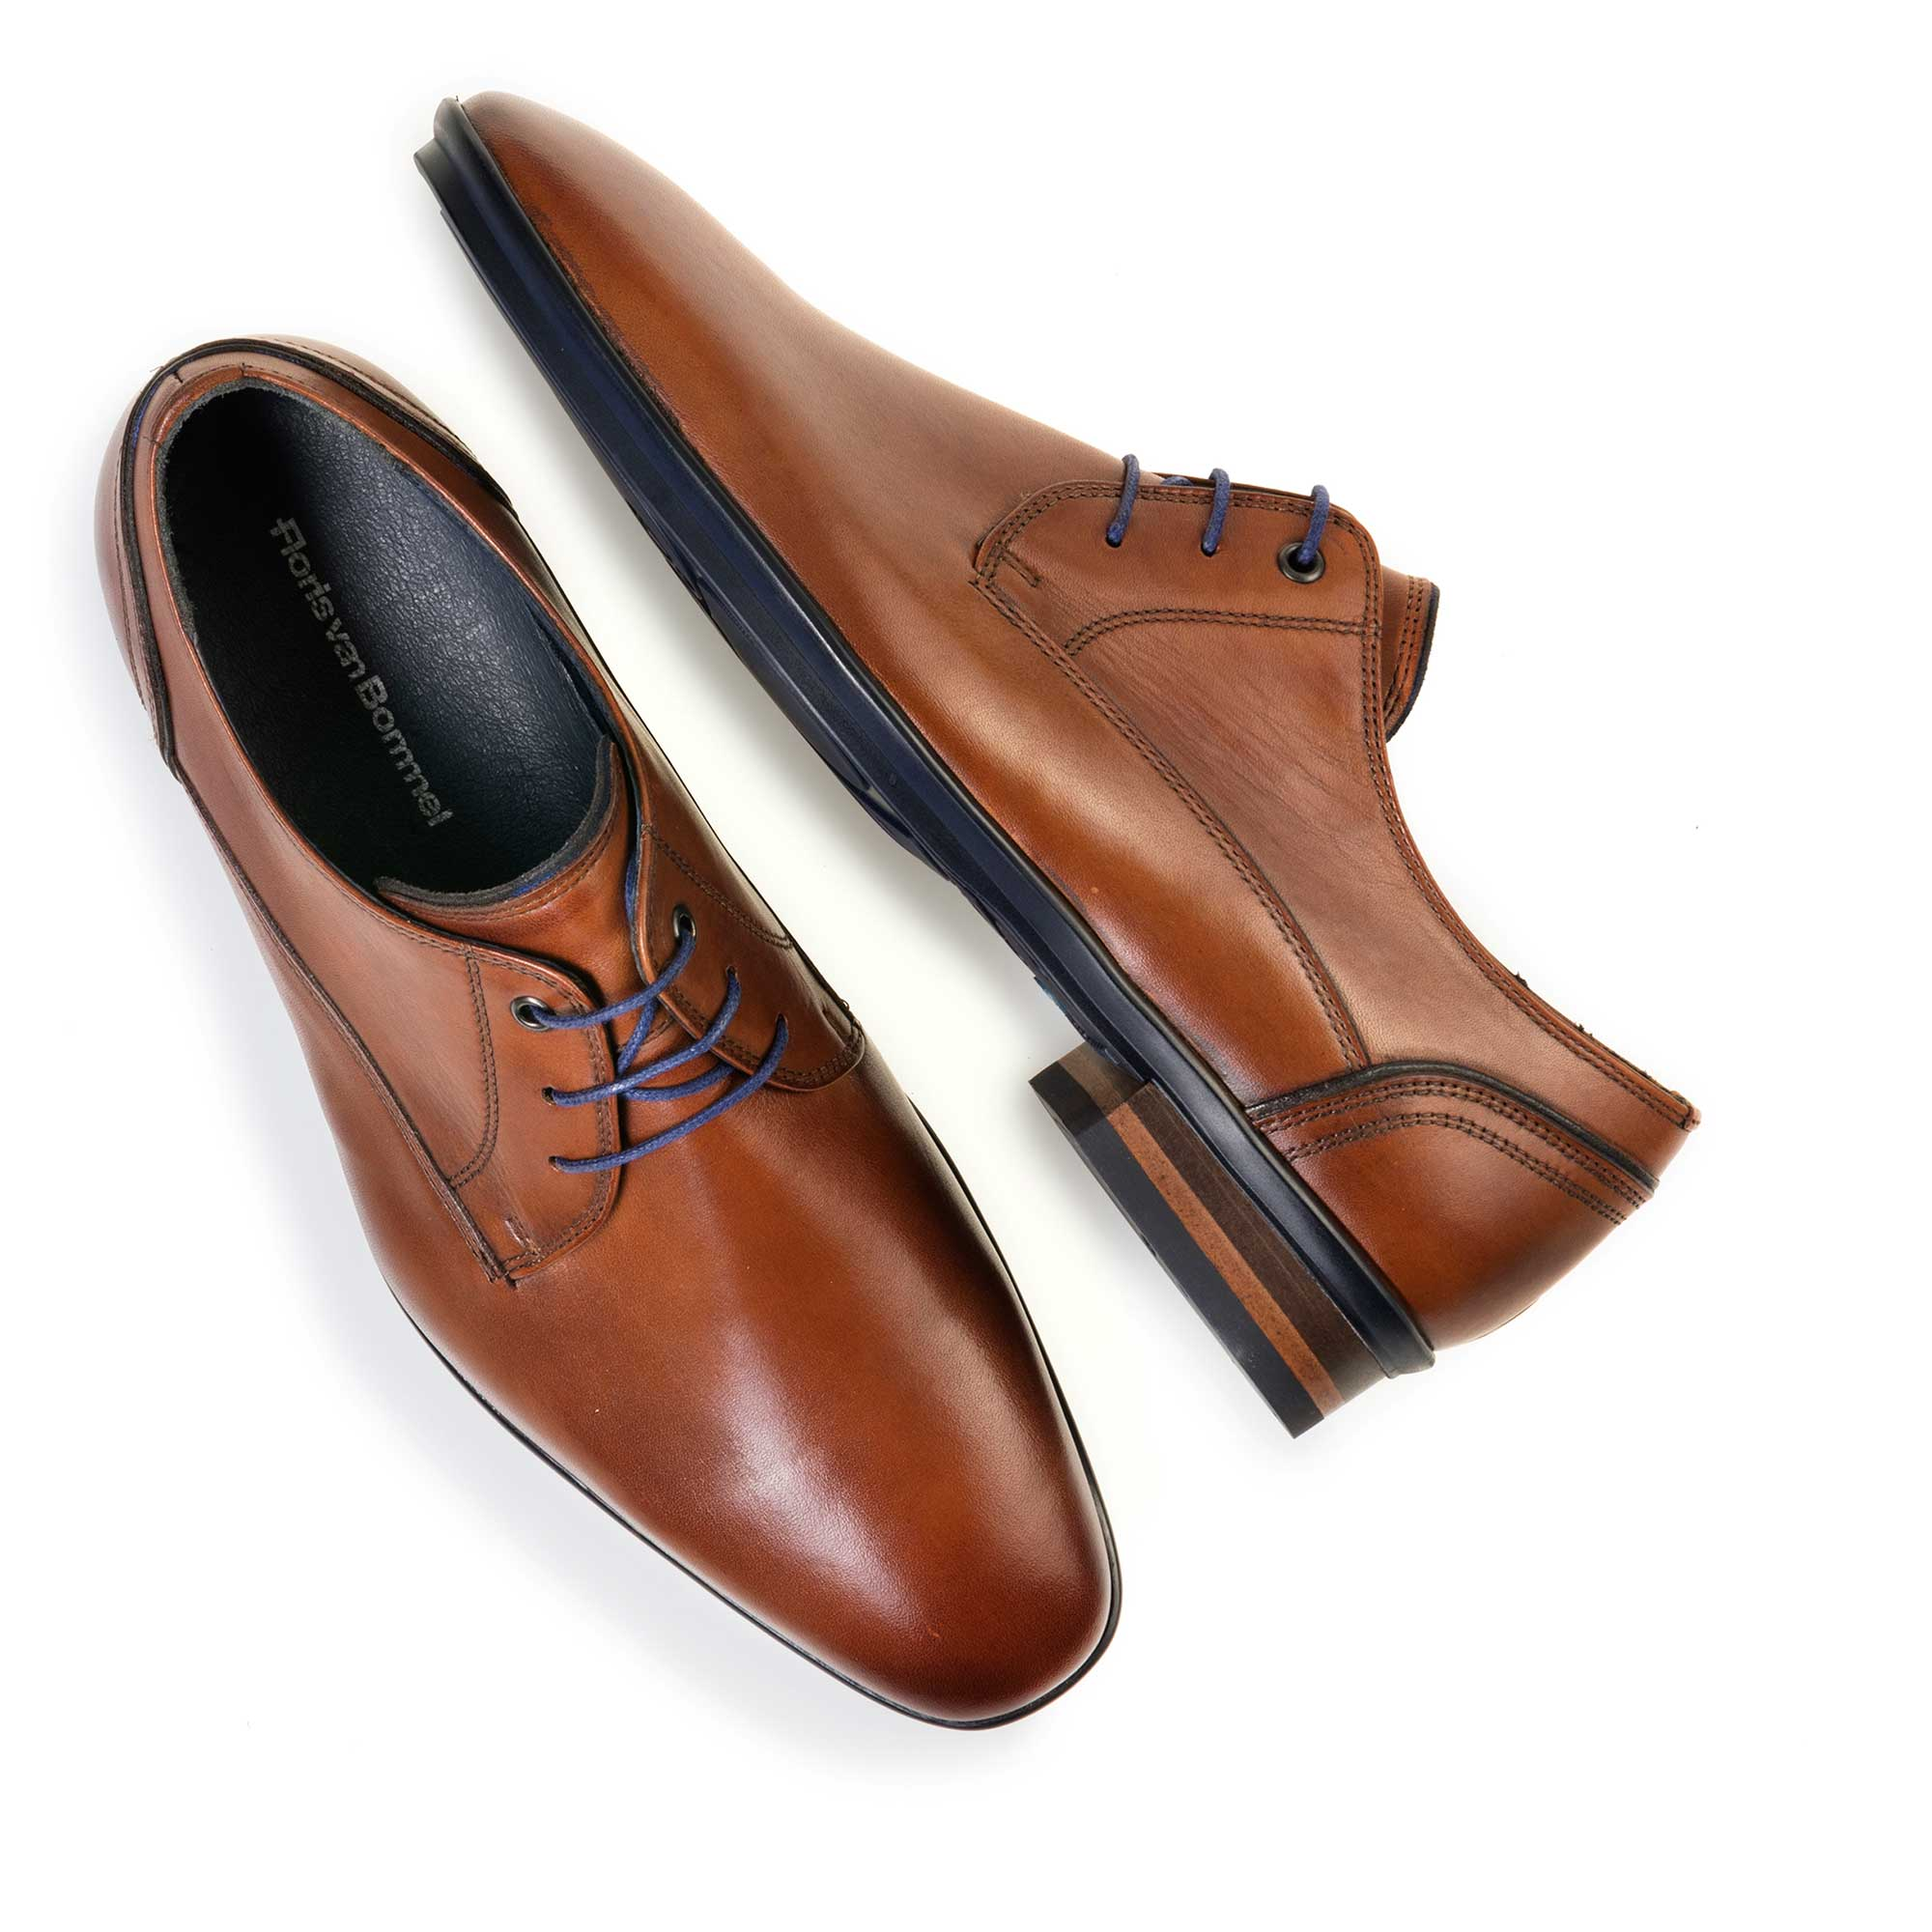 14499/00 - Cognac-coloured leather lace shoe